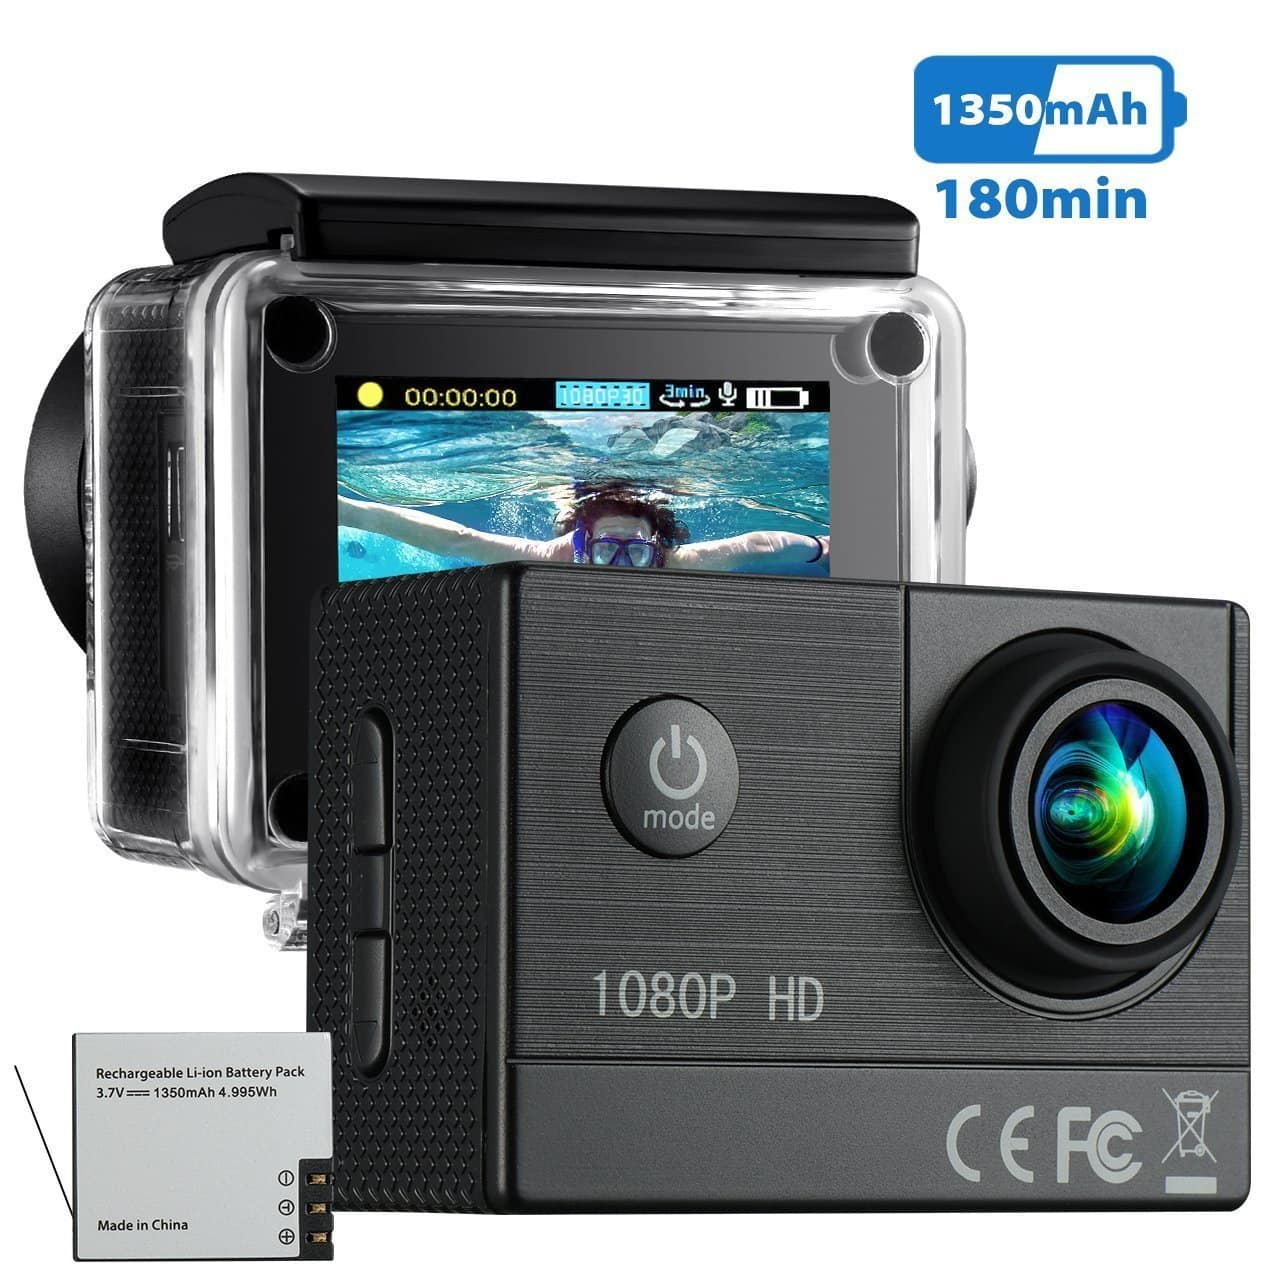 Waterproof Action Camera (HD 1080P) - $15.99 w/Code + Free Shipping w/Prime